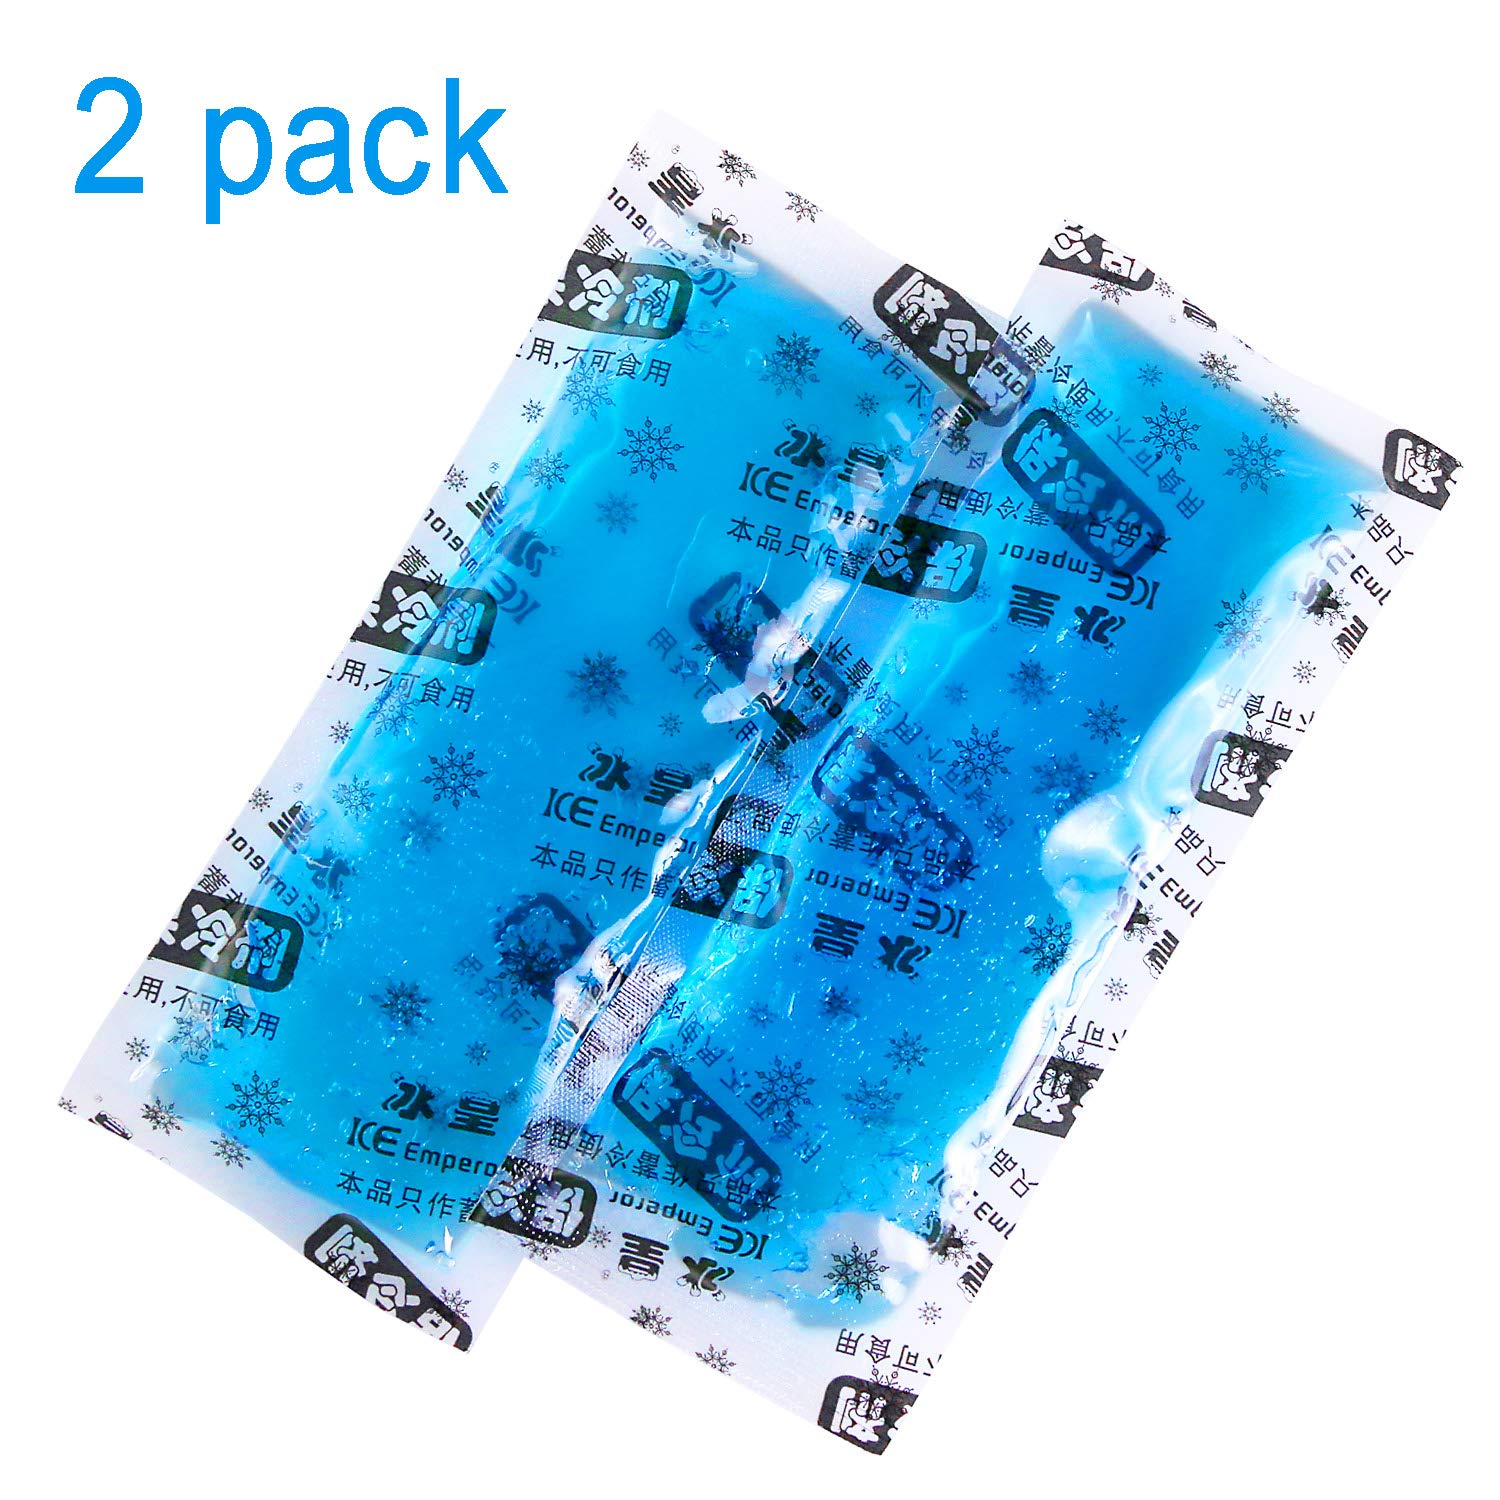 2 Packs of Ice Packs - Reusable Freezer Packs Hot Or Cold Gel Pack for for Insulin Cool Storage Bag by YOUSHARES